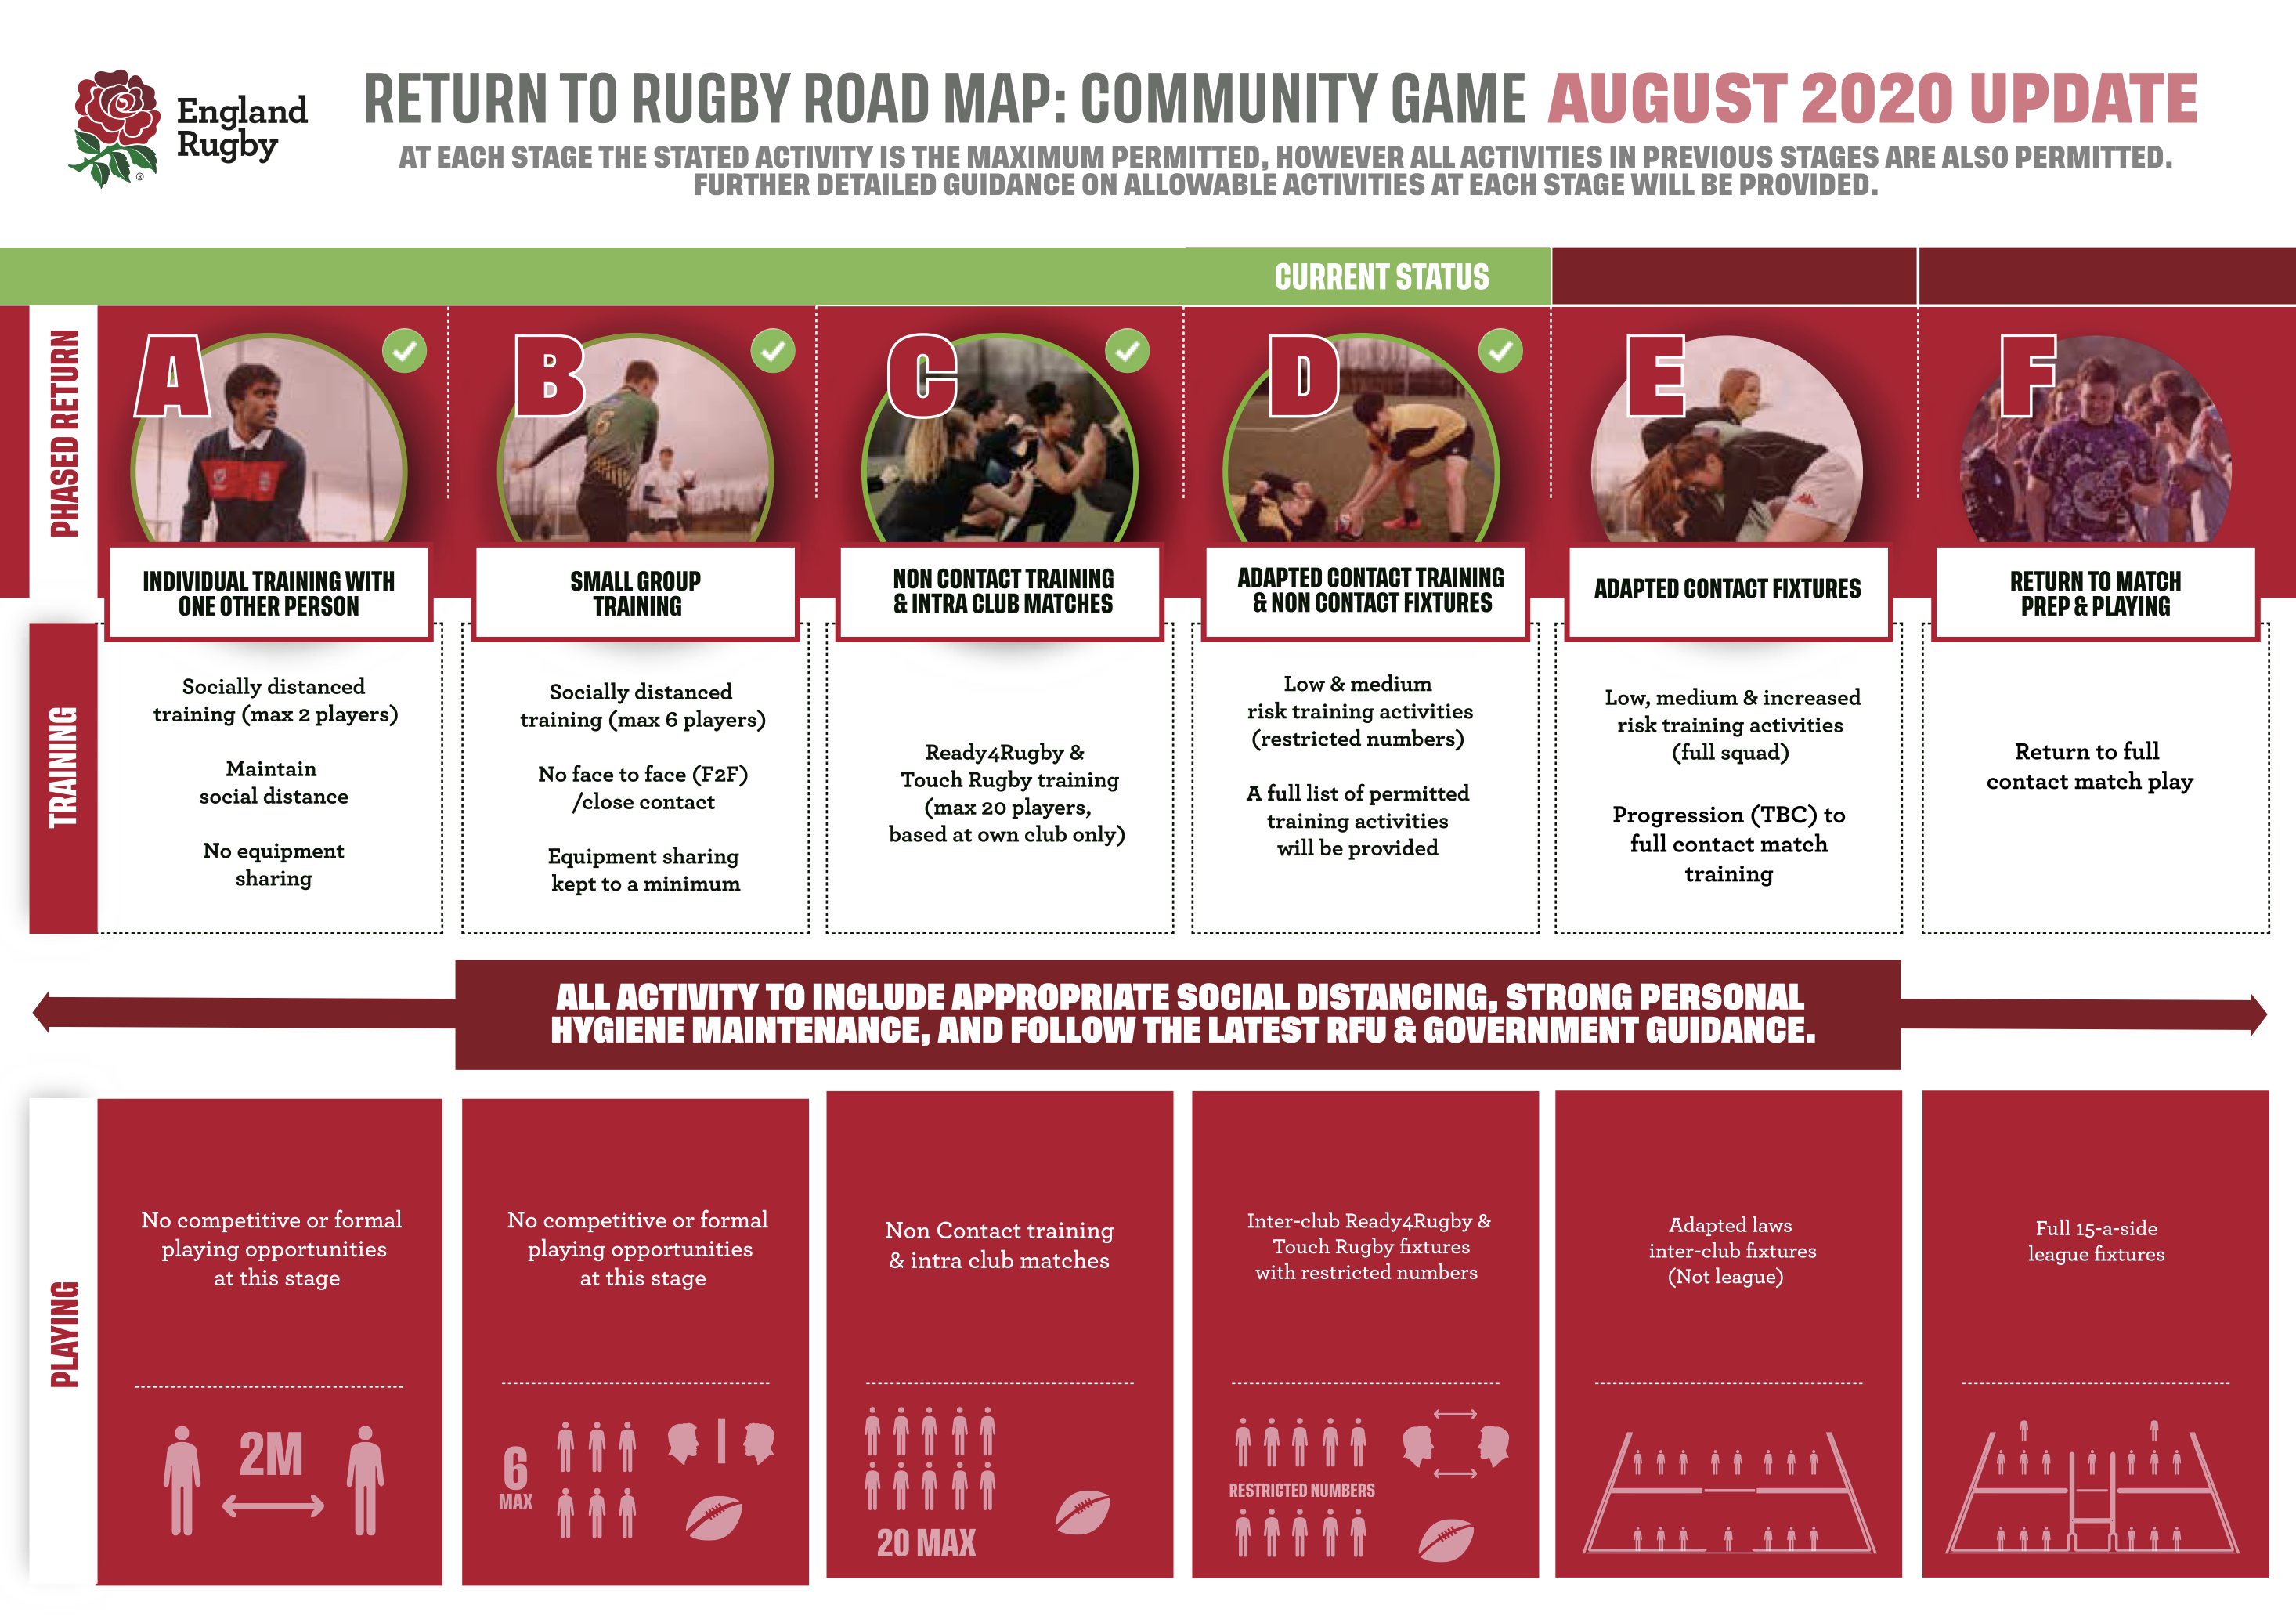 RFU announce limited contact training approved for Community Clubs